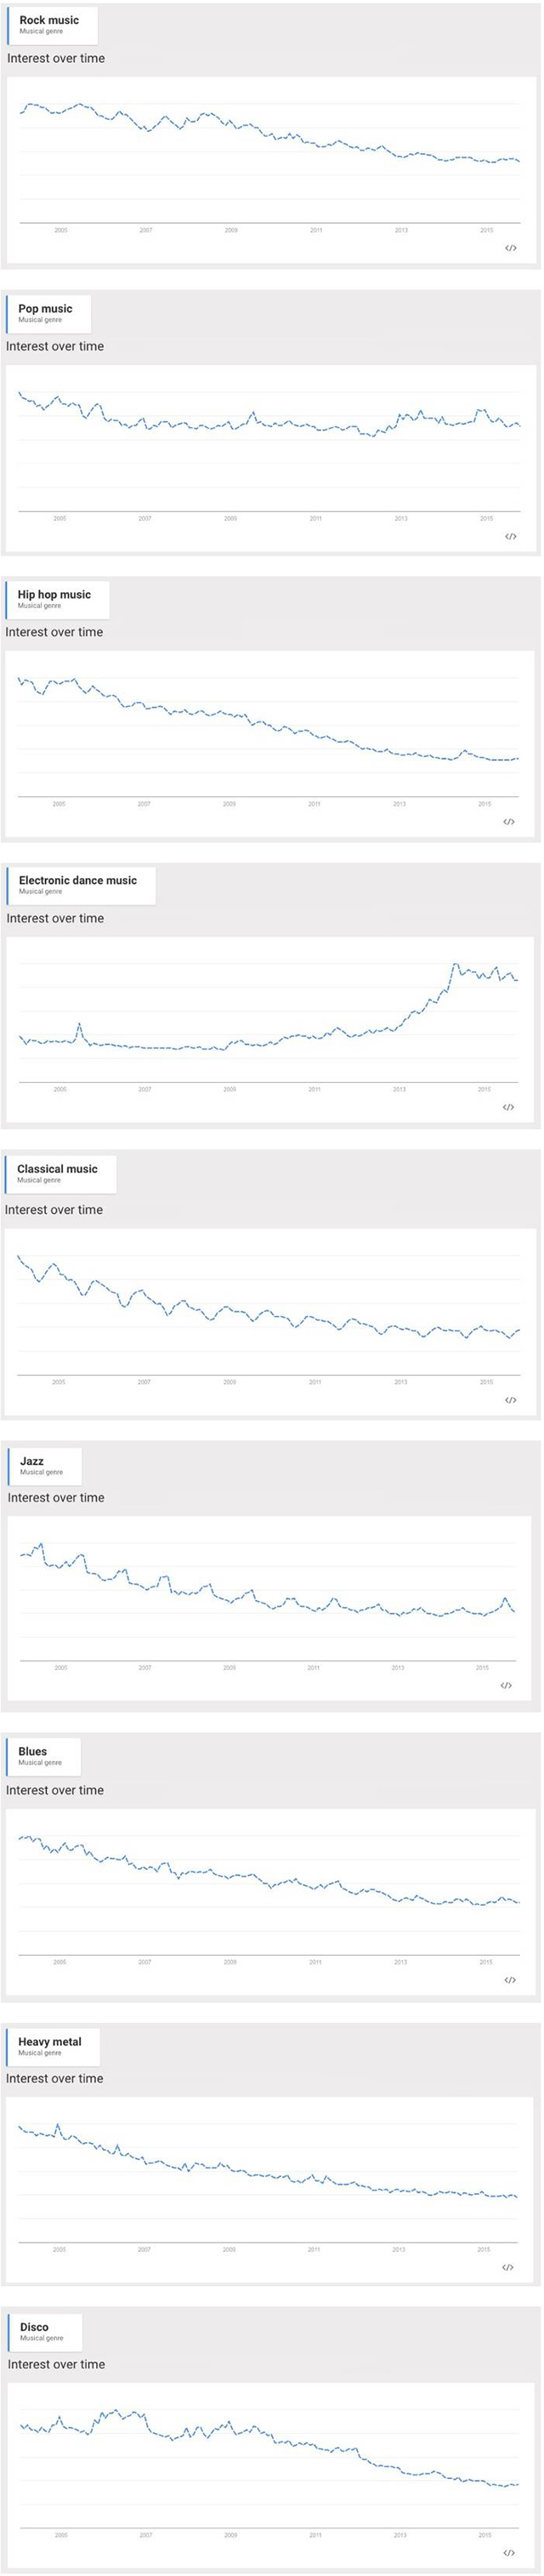 The_Popularity_of_Music_Genres,_2005-presentDigital_Music_News_-_2015-11-03_02.24.16.png